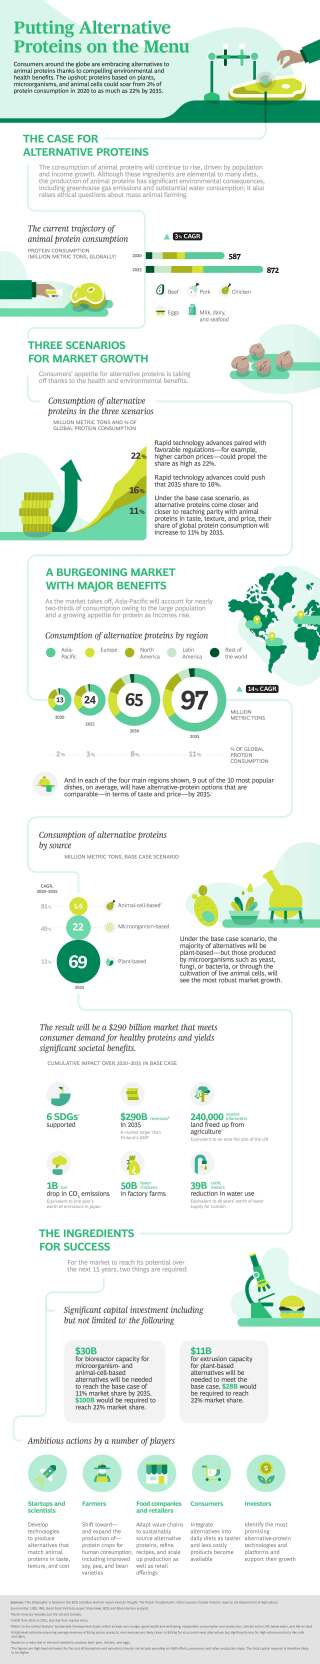 Putting Alternative Proteins on the Menu | Infographic